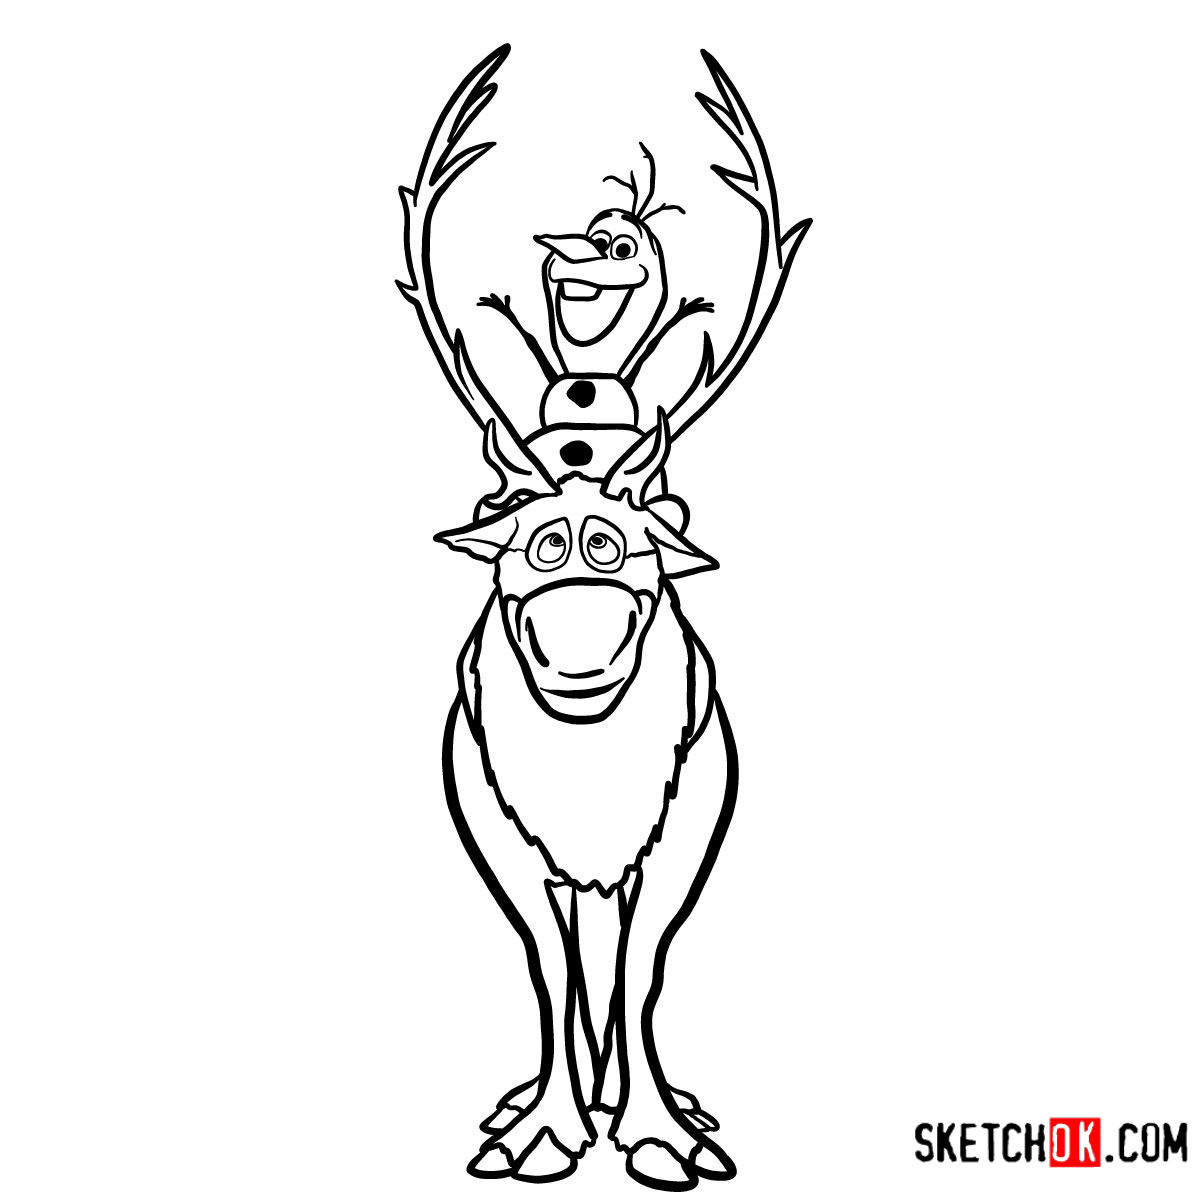 How to draw Olaf riding Sven | Frozen